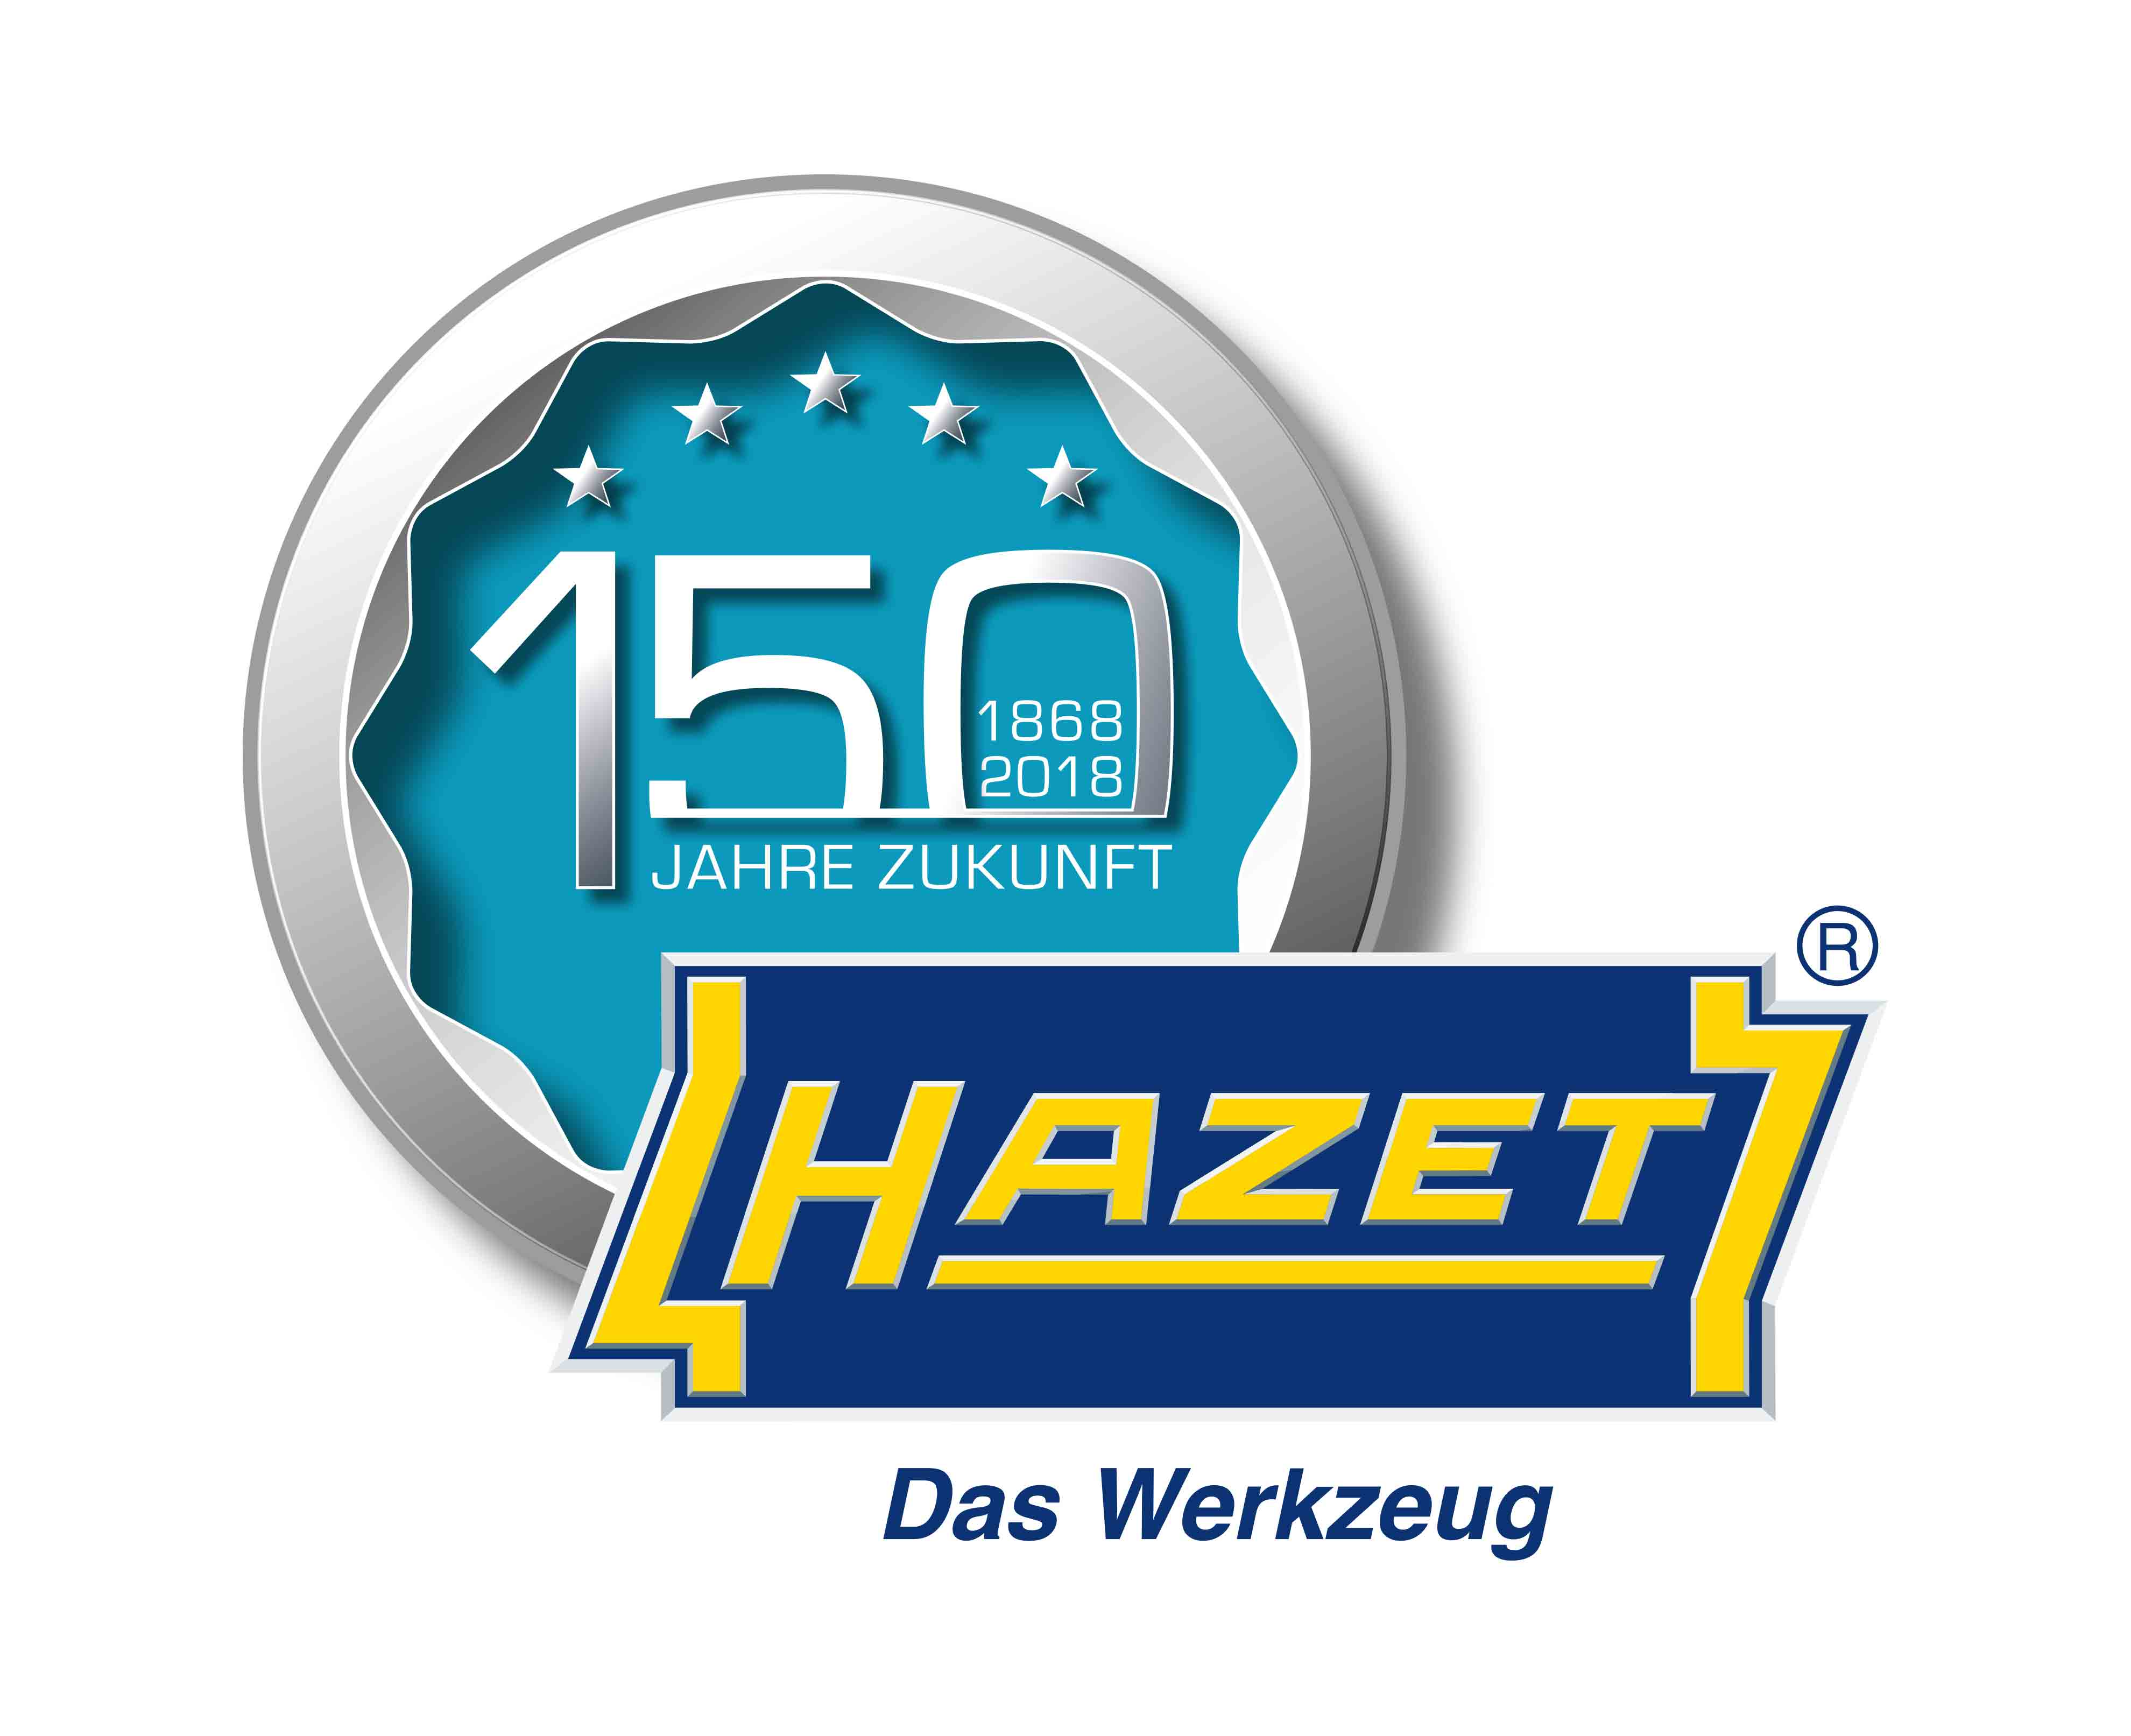 HAZET presents a new logo in its anniversary year